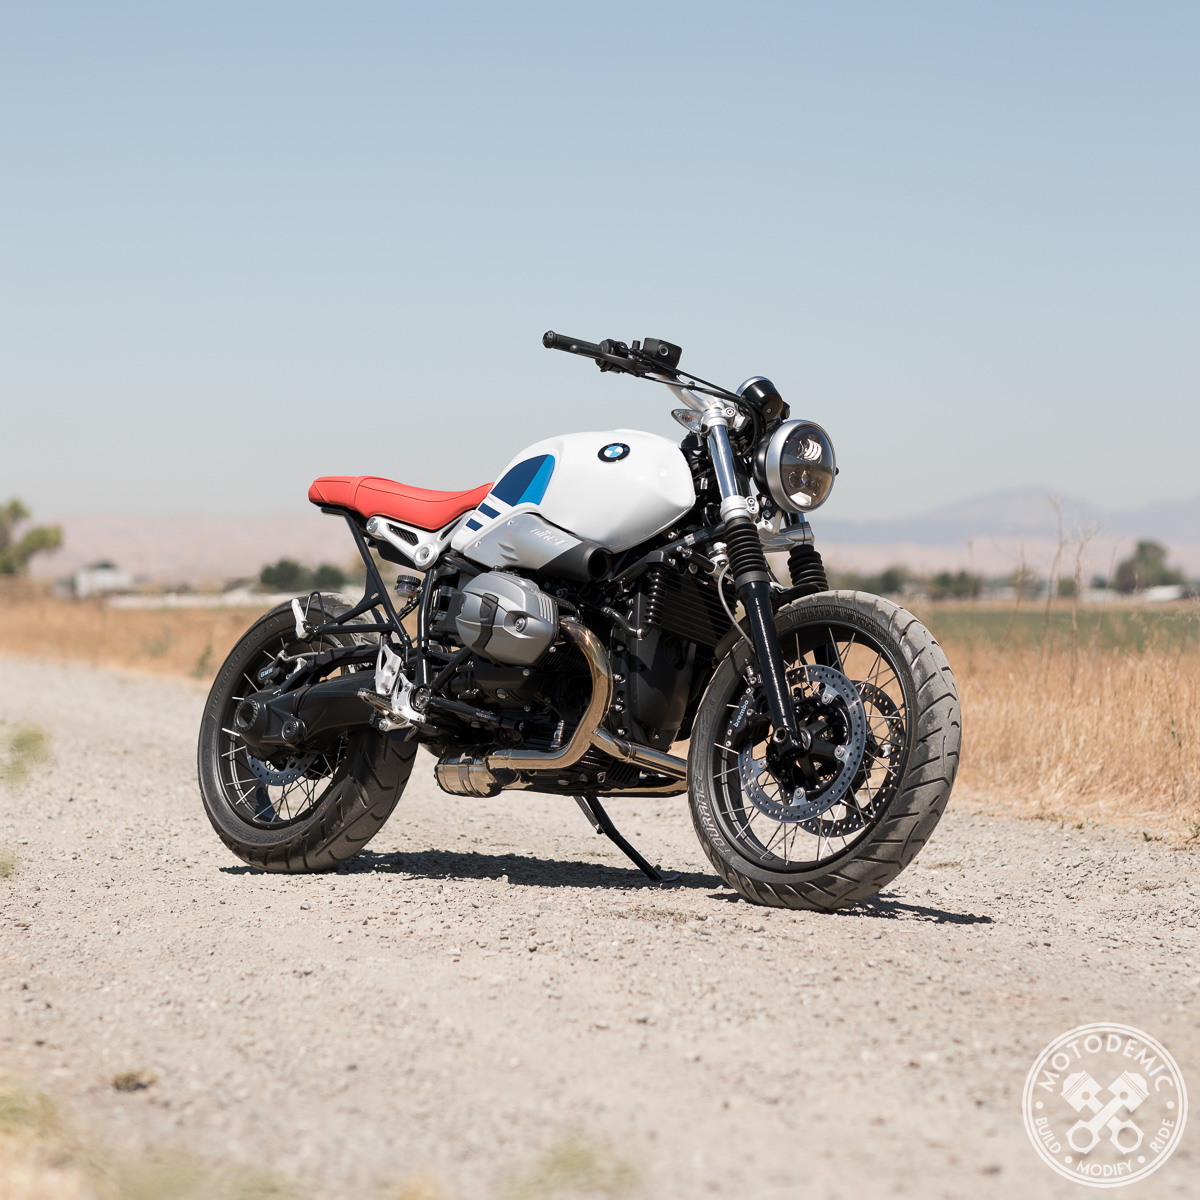 001-motodemic-rninet-led-headlight